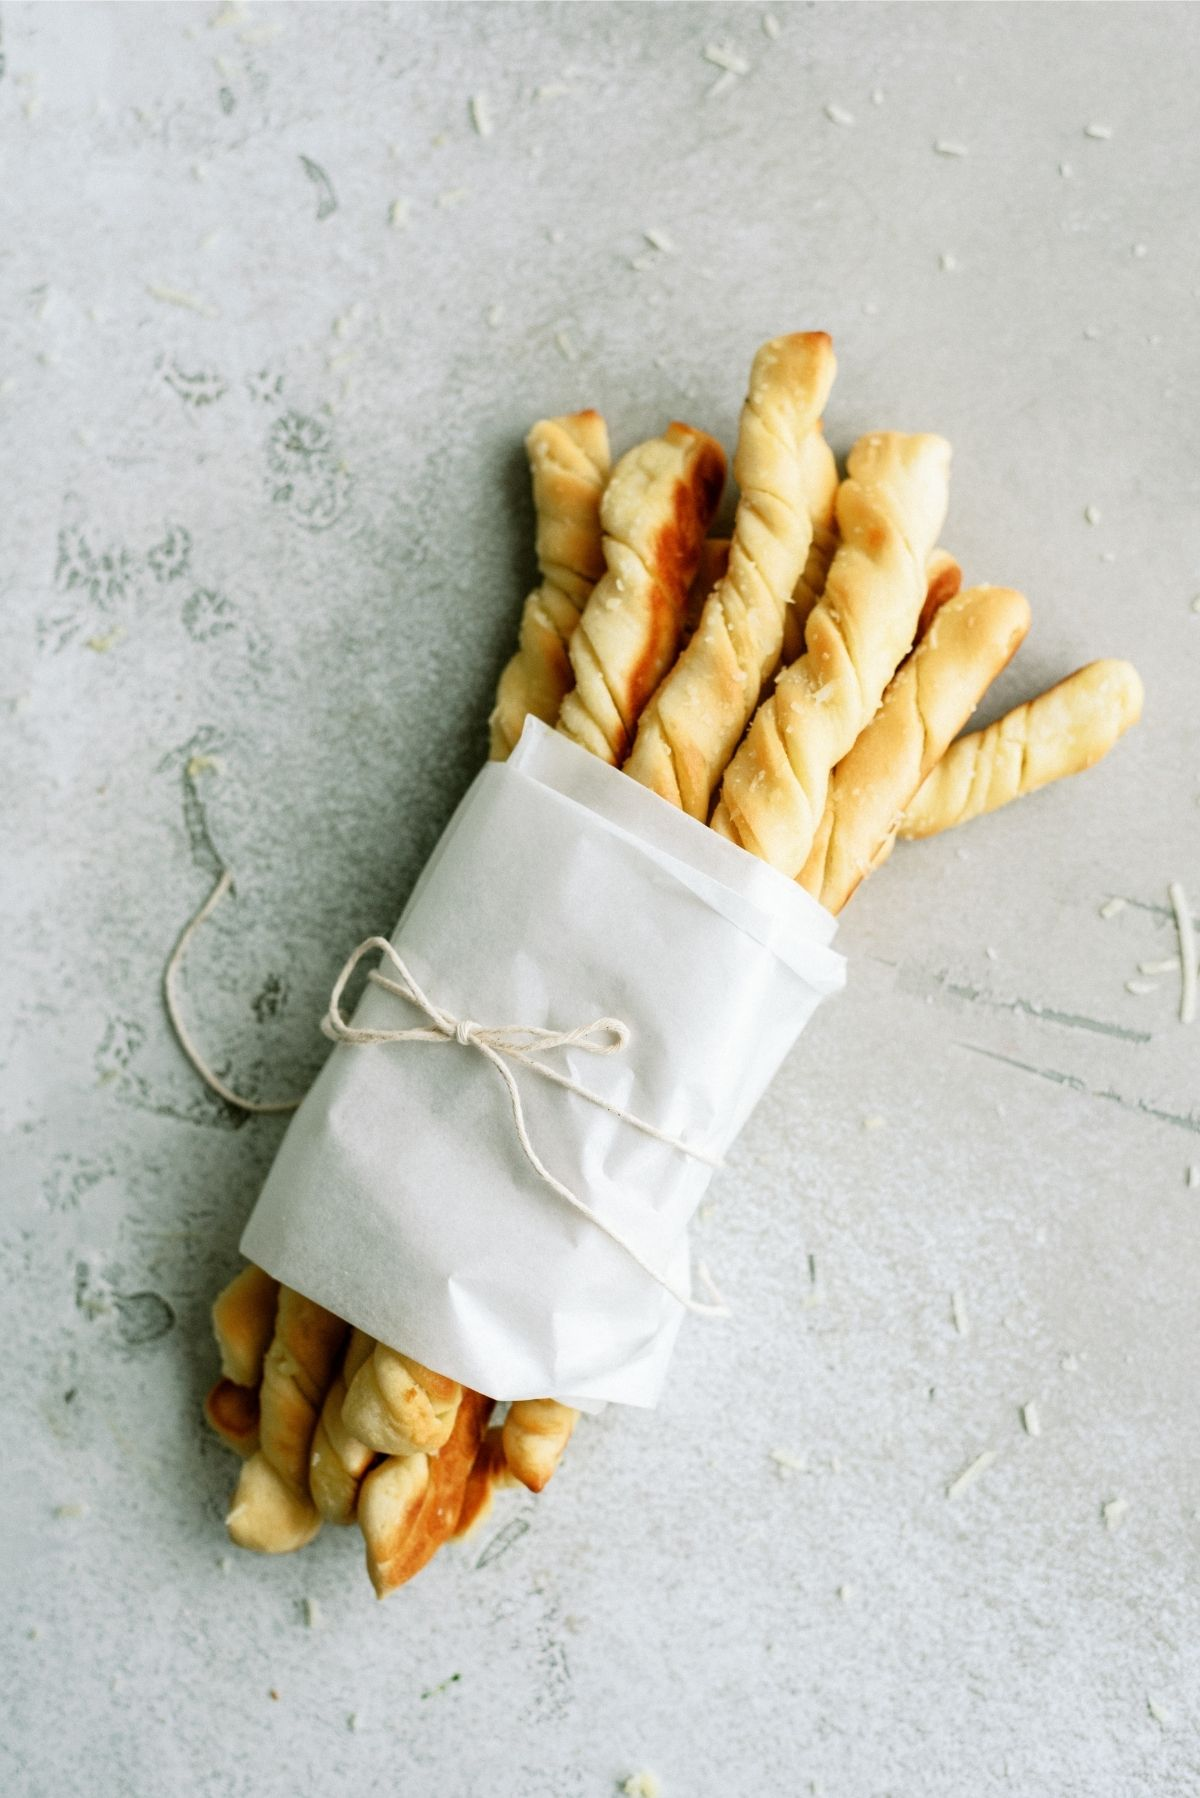 Homemade Pizza Factory Breadsticks wrapped with parchment paper and twine